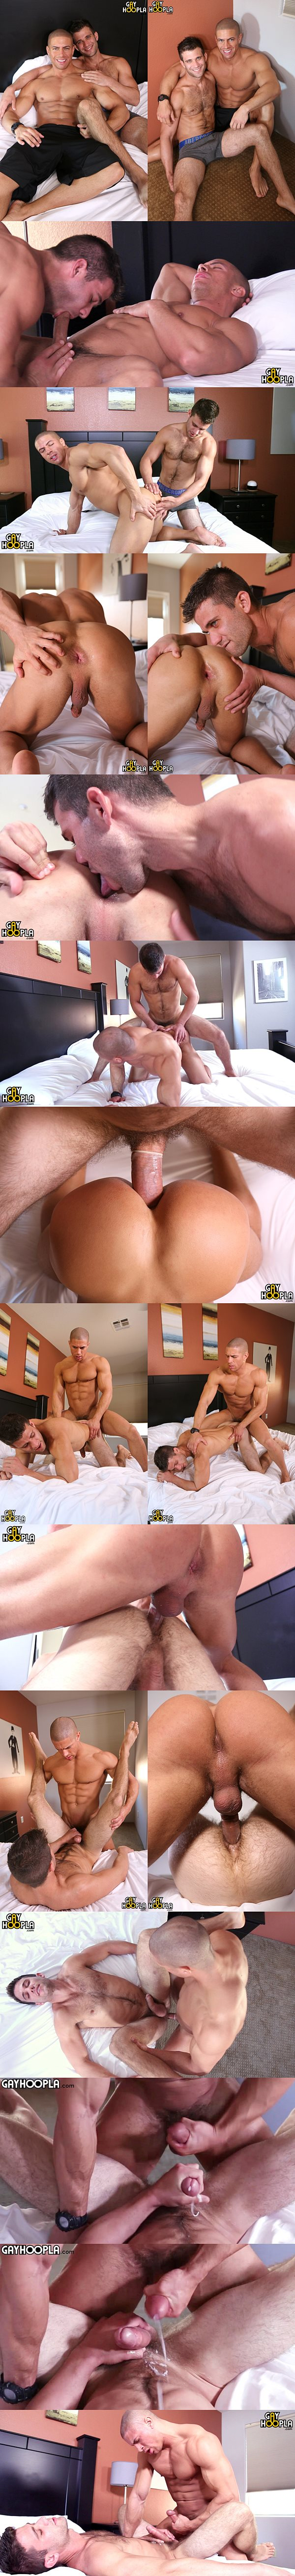 Sean Costin and Cole Money take turns fucking each other's muscle asses at Gayhoopla 02